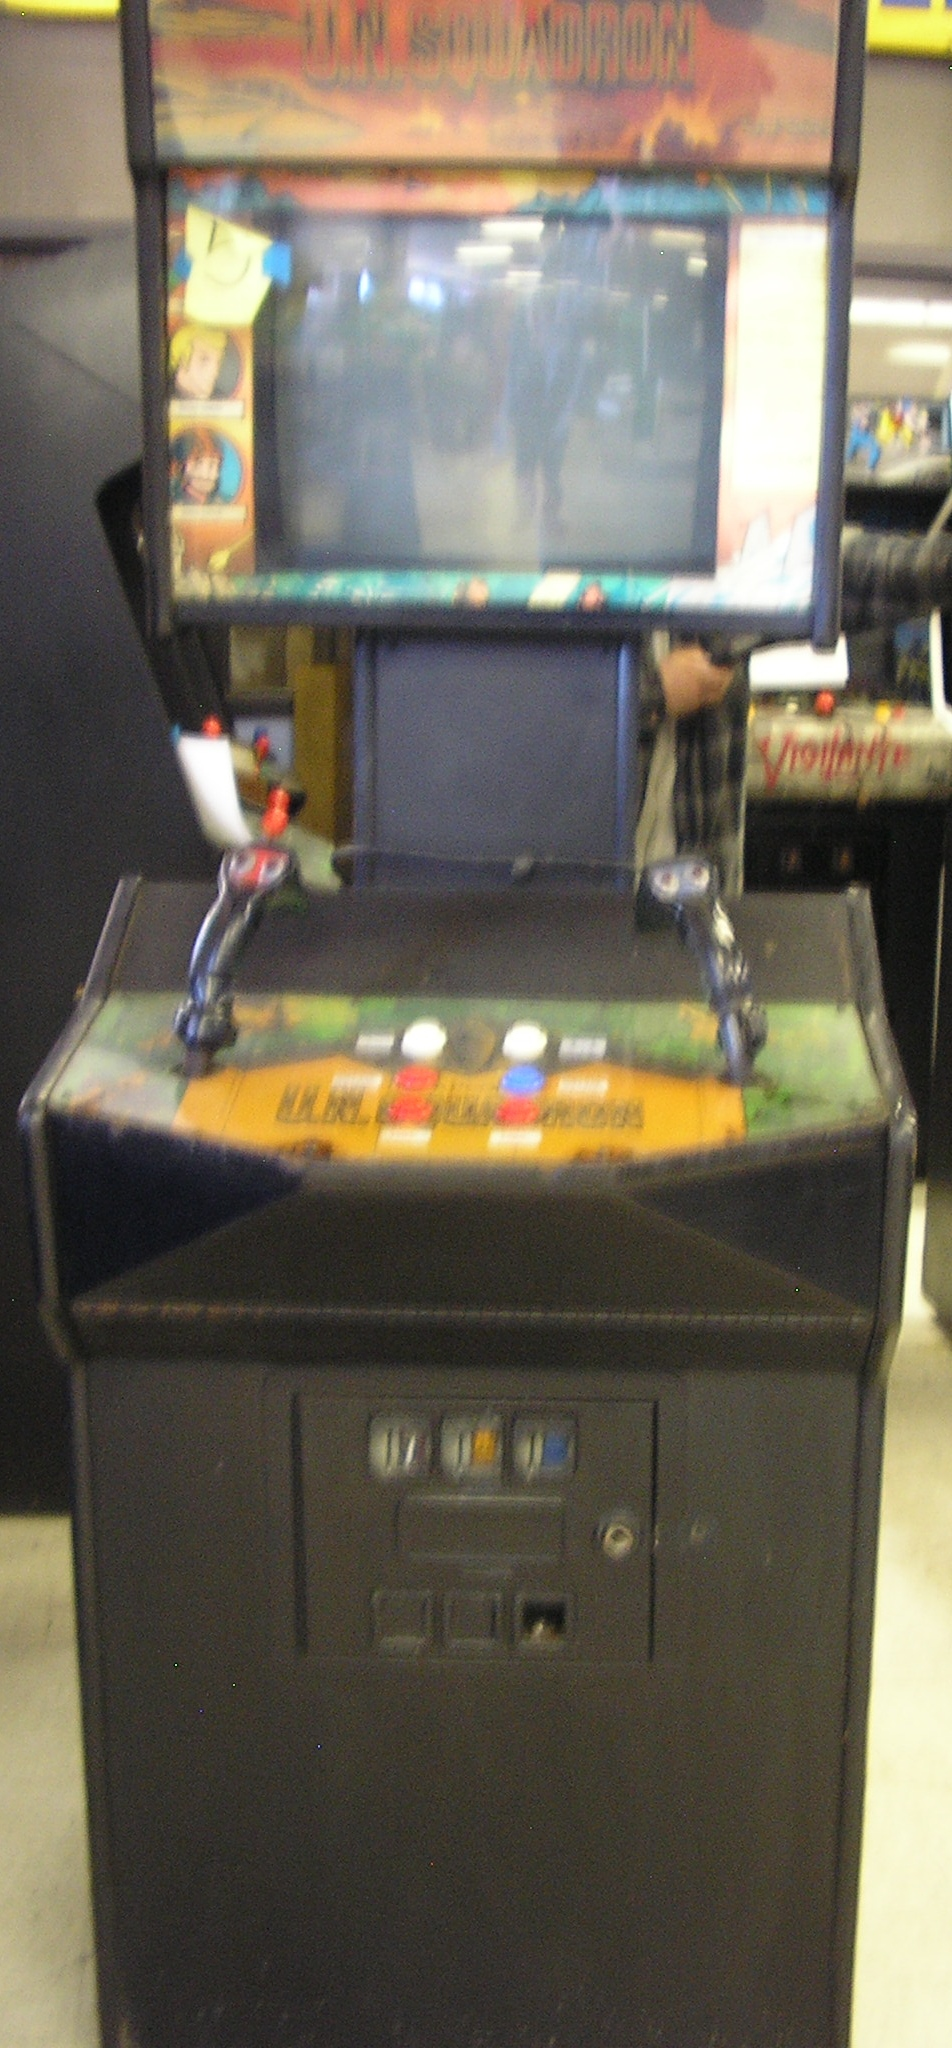 U N Squadron Arcade Machine Game For Sale By Capcom